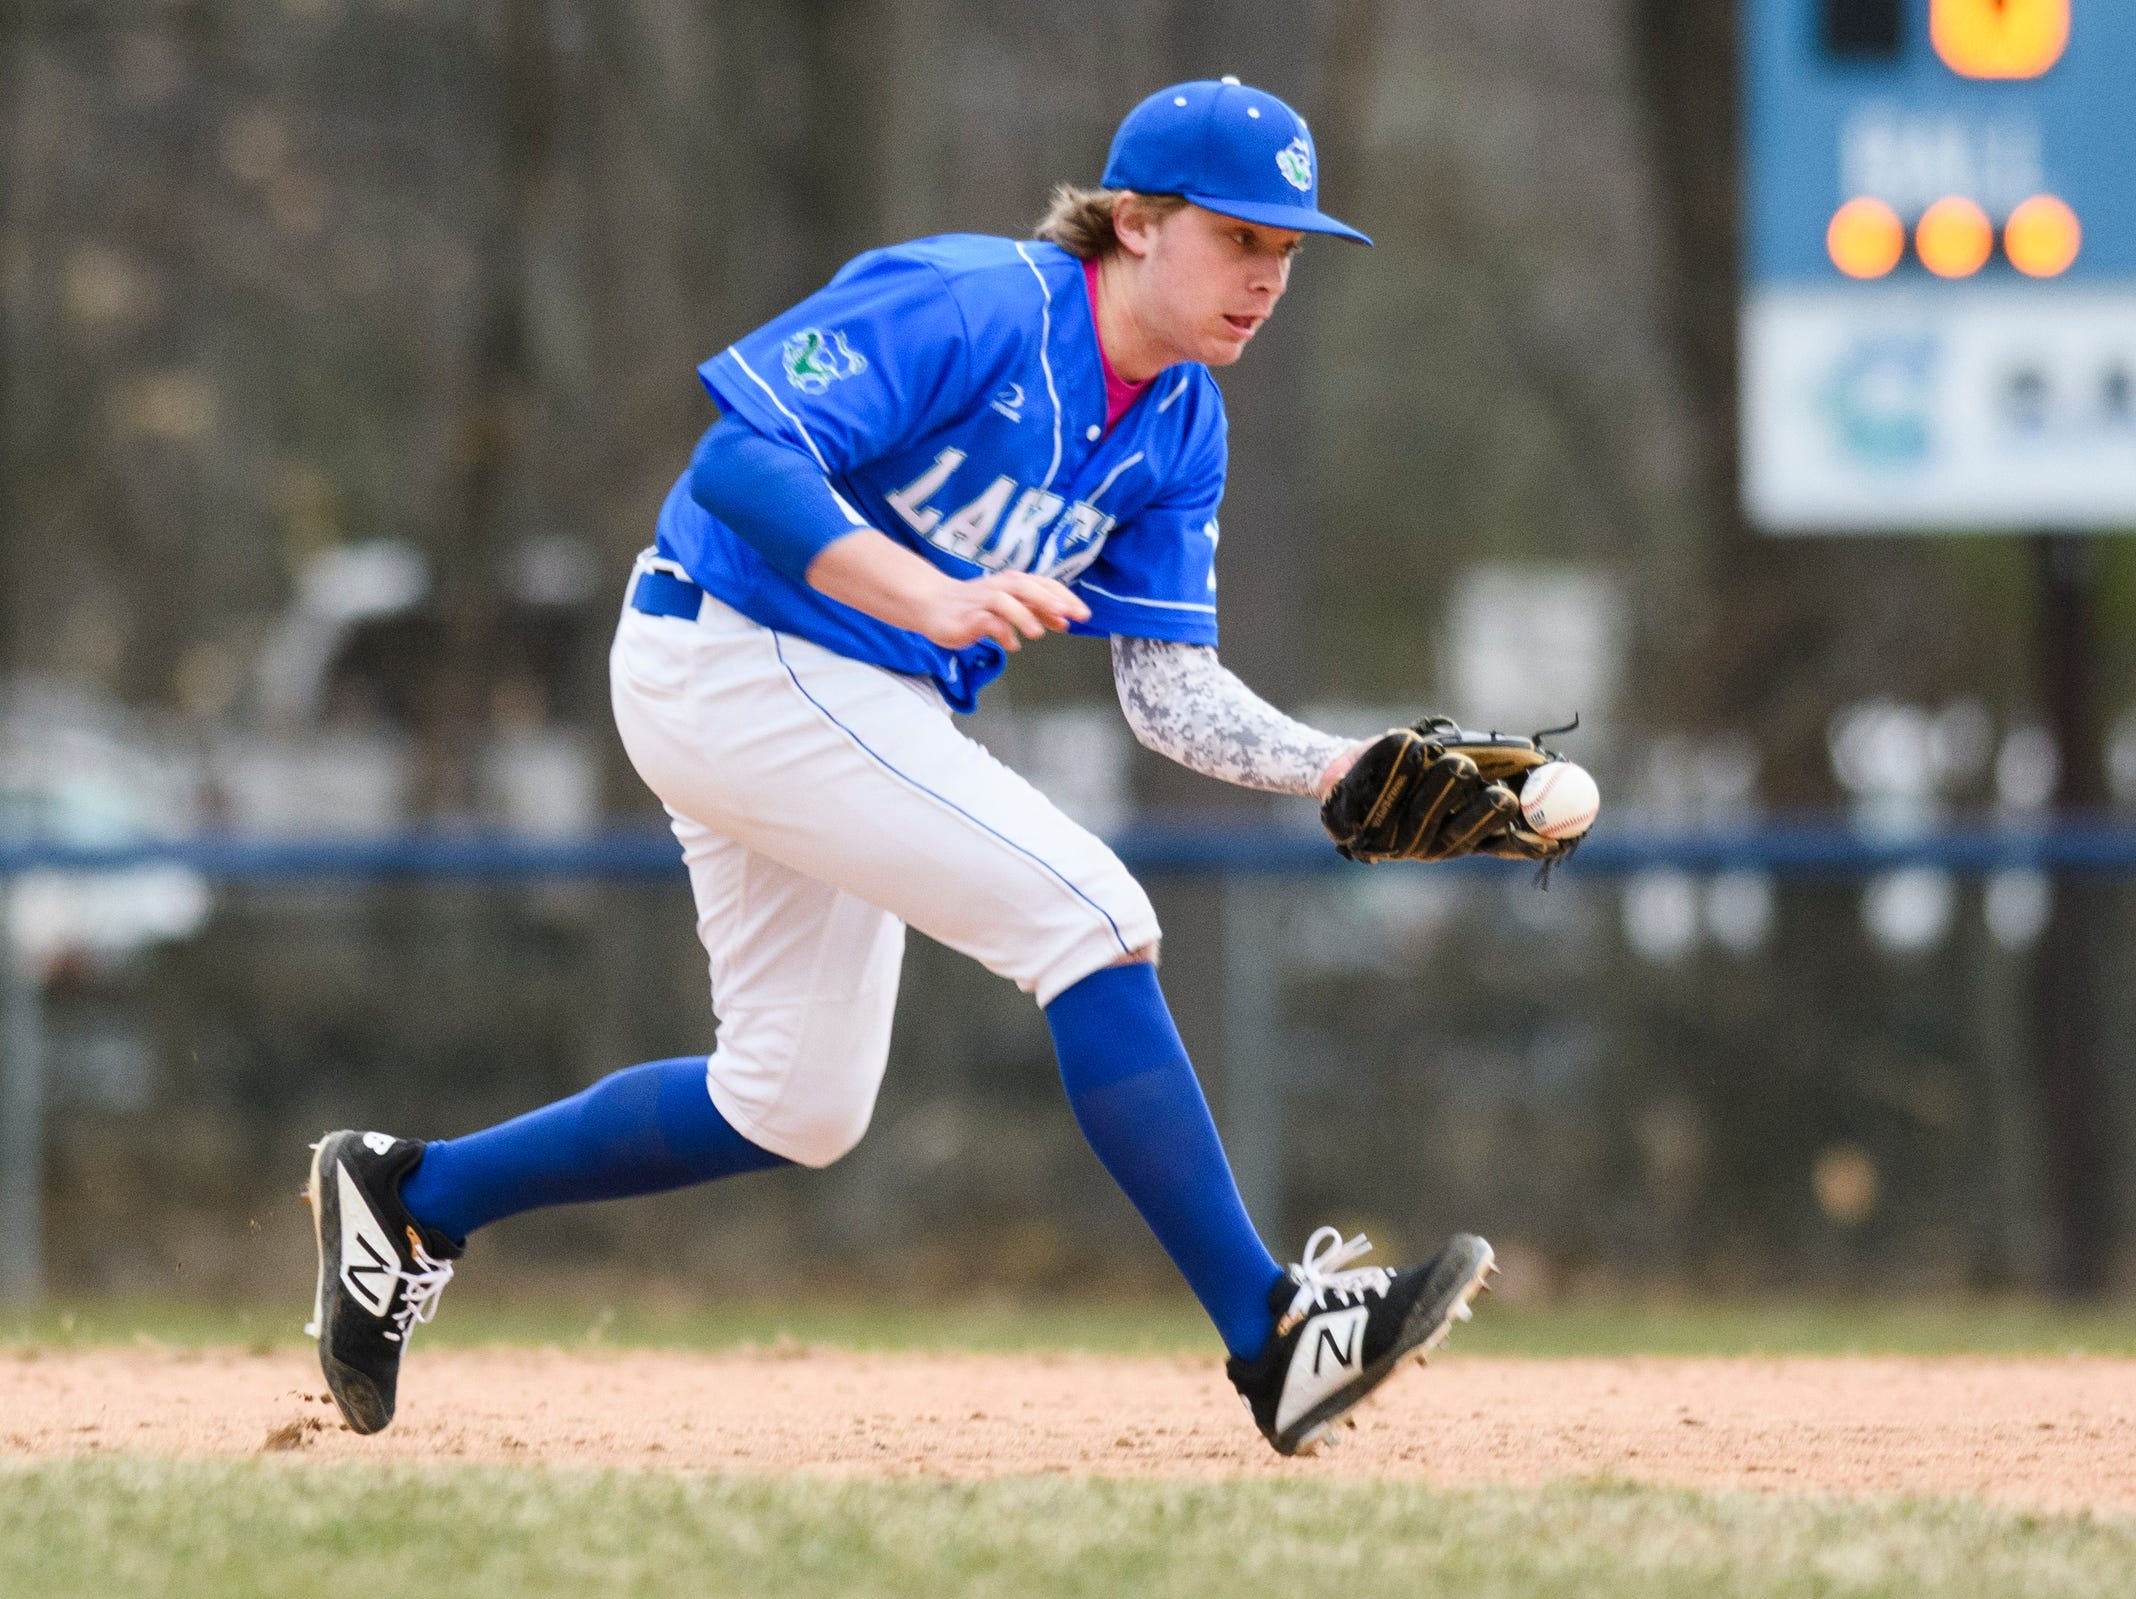 Colchester short stop Eben Provost (10) plays the ground ball during the boys baseball game between the South Burlington Wolves and the Colchester Lakers at Colchester high school on Thursday afternoon April 18, 2019 in Colchester, Vermont.